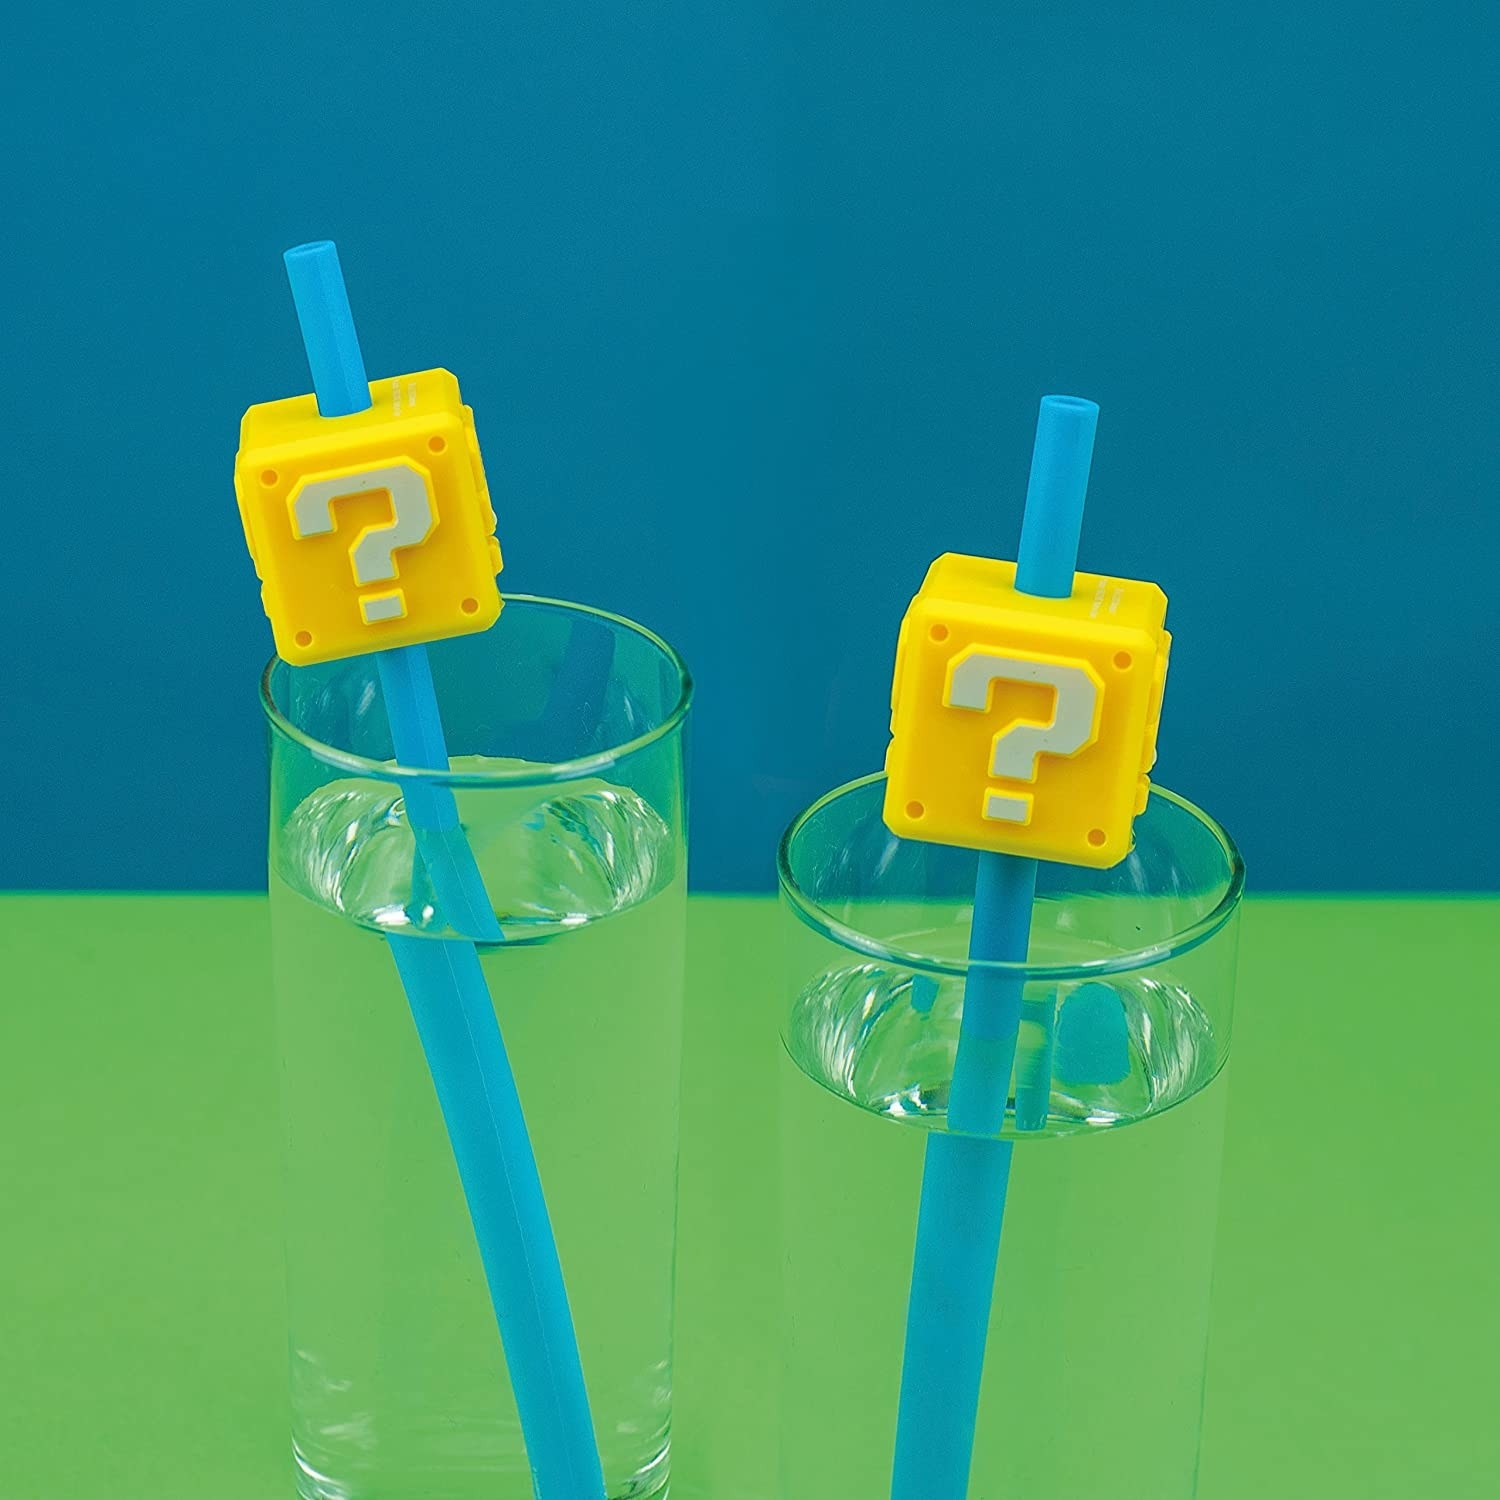 two blue straws with yellow question boxes